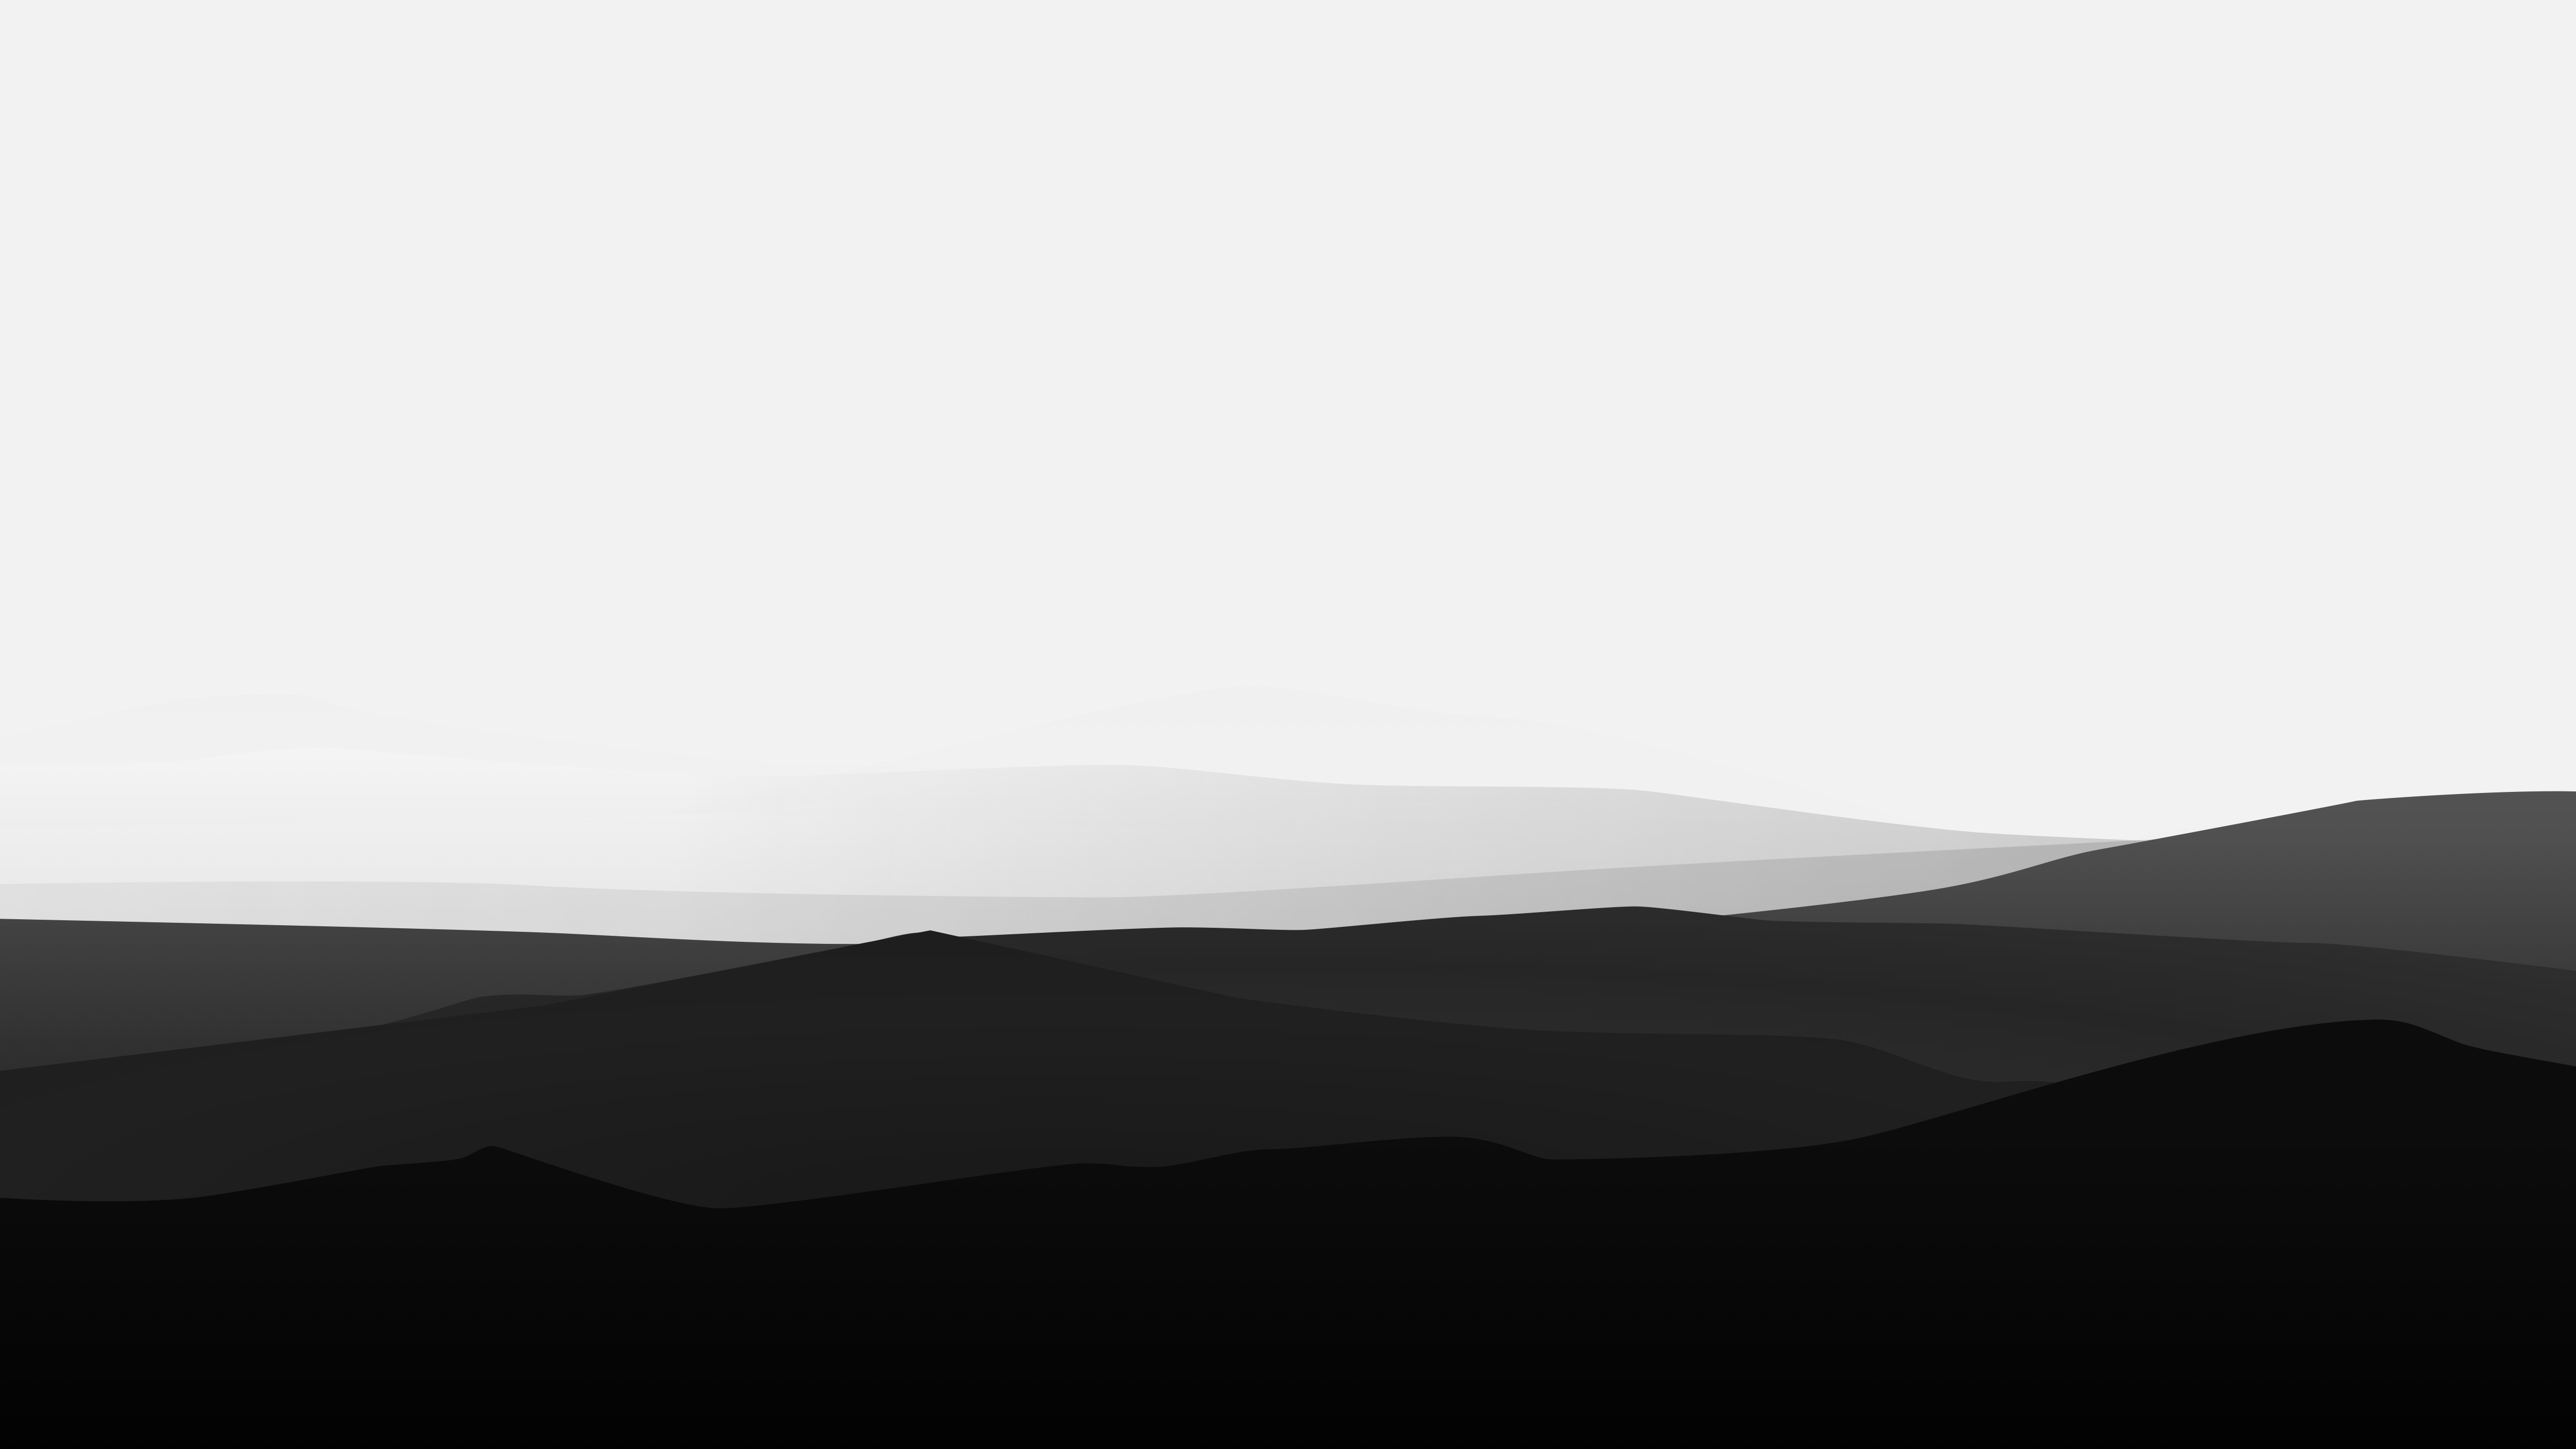 1280x1024 minimalist mountains black and white 1280x1024 resolution